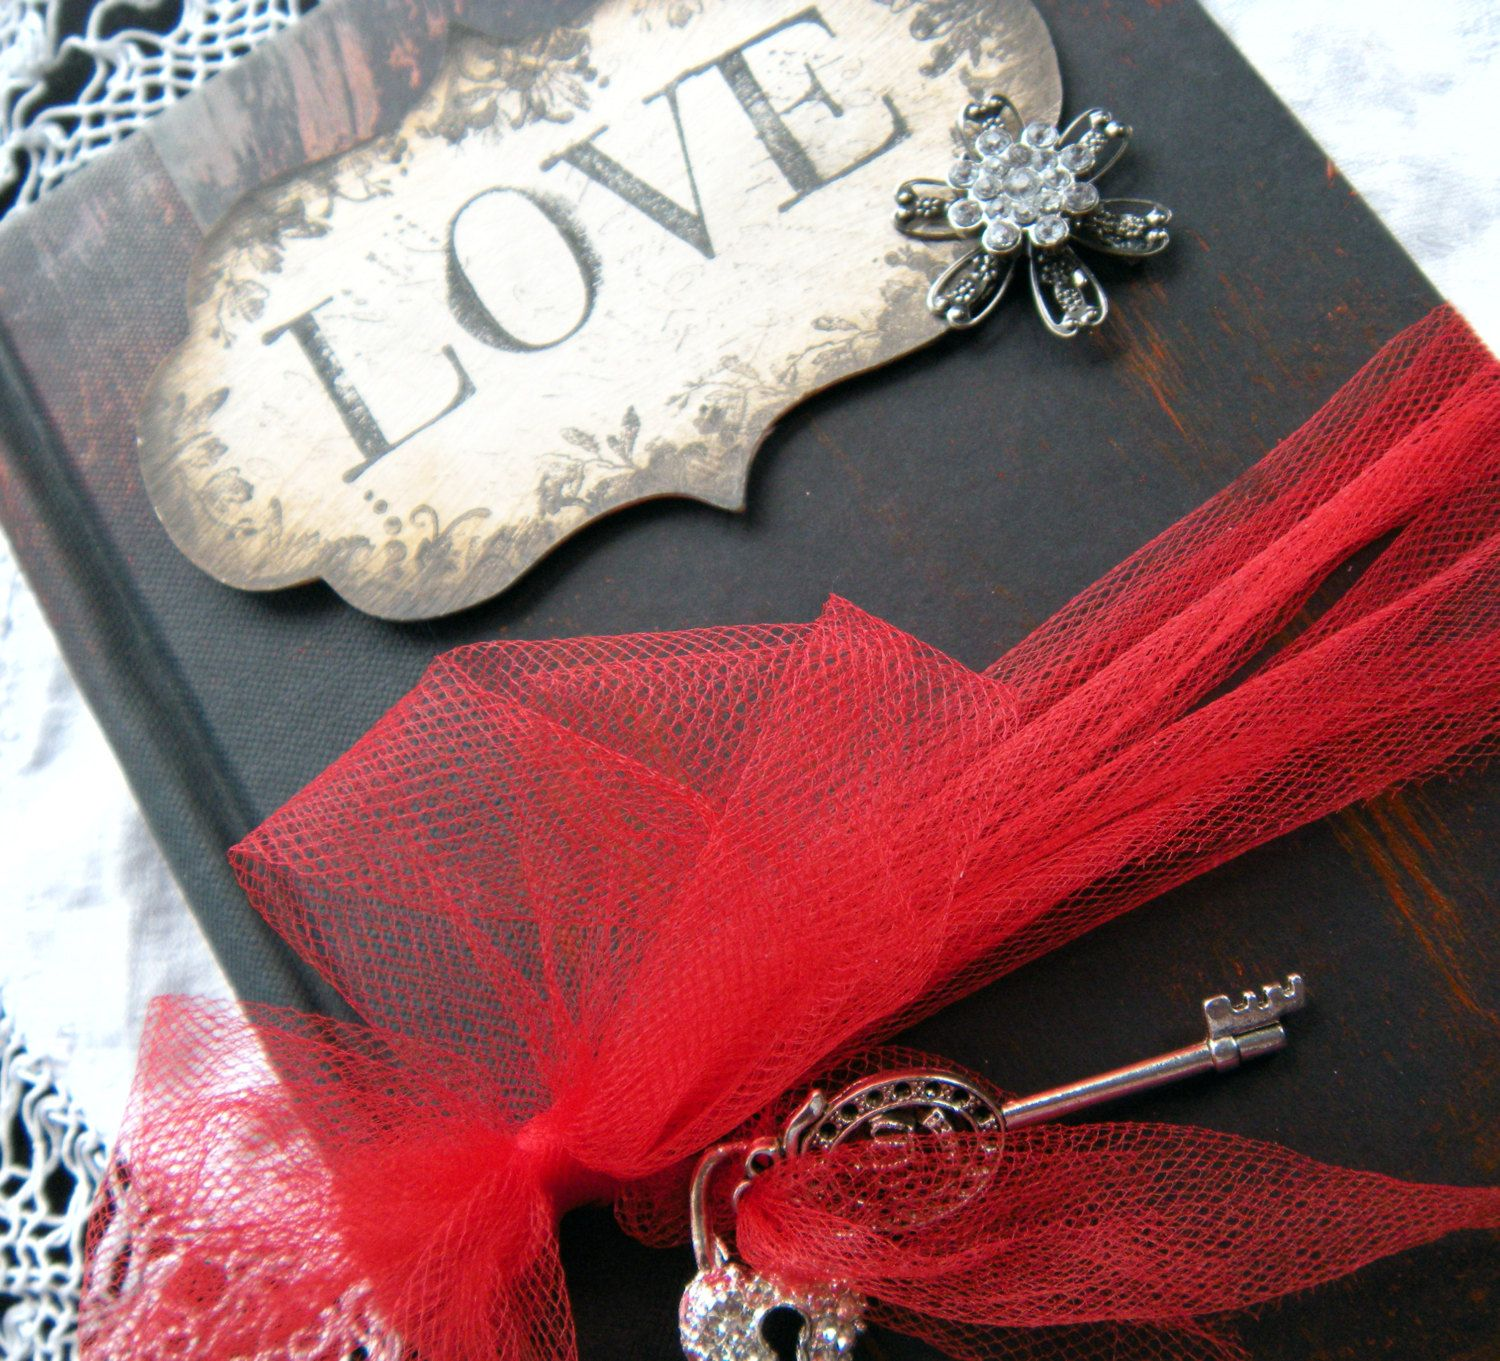 Gothic Style Weddings | Gothic Wedding Guest Book vintage style Ruby ...